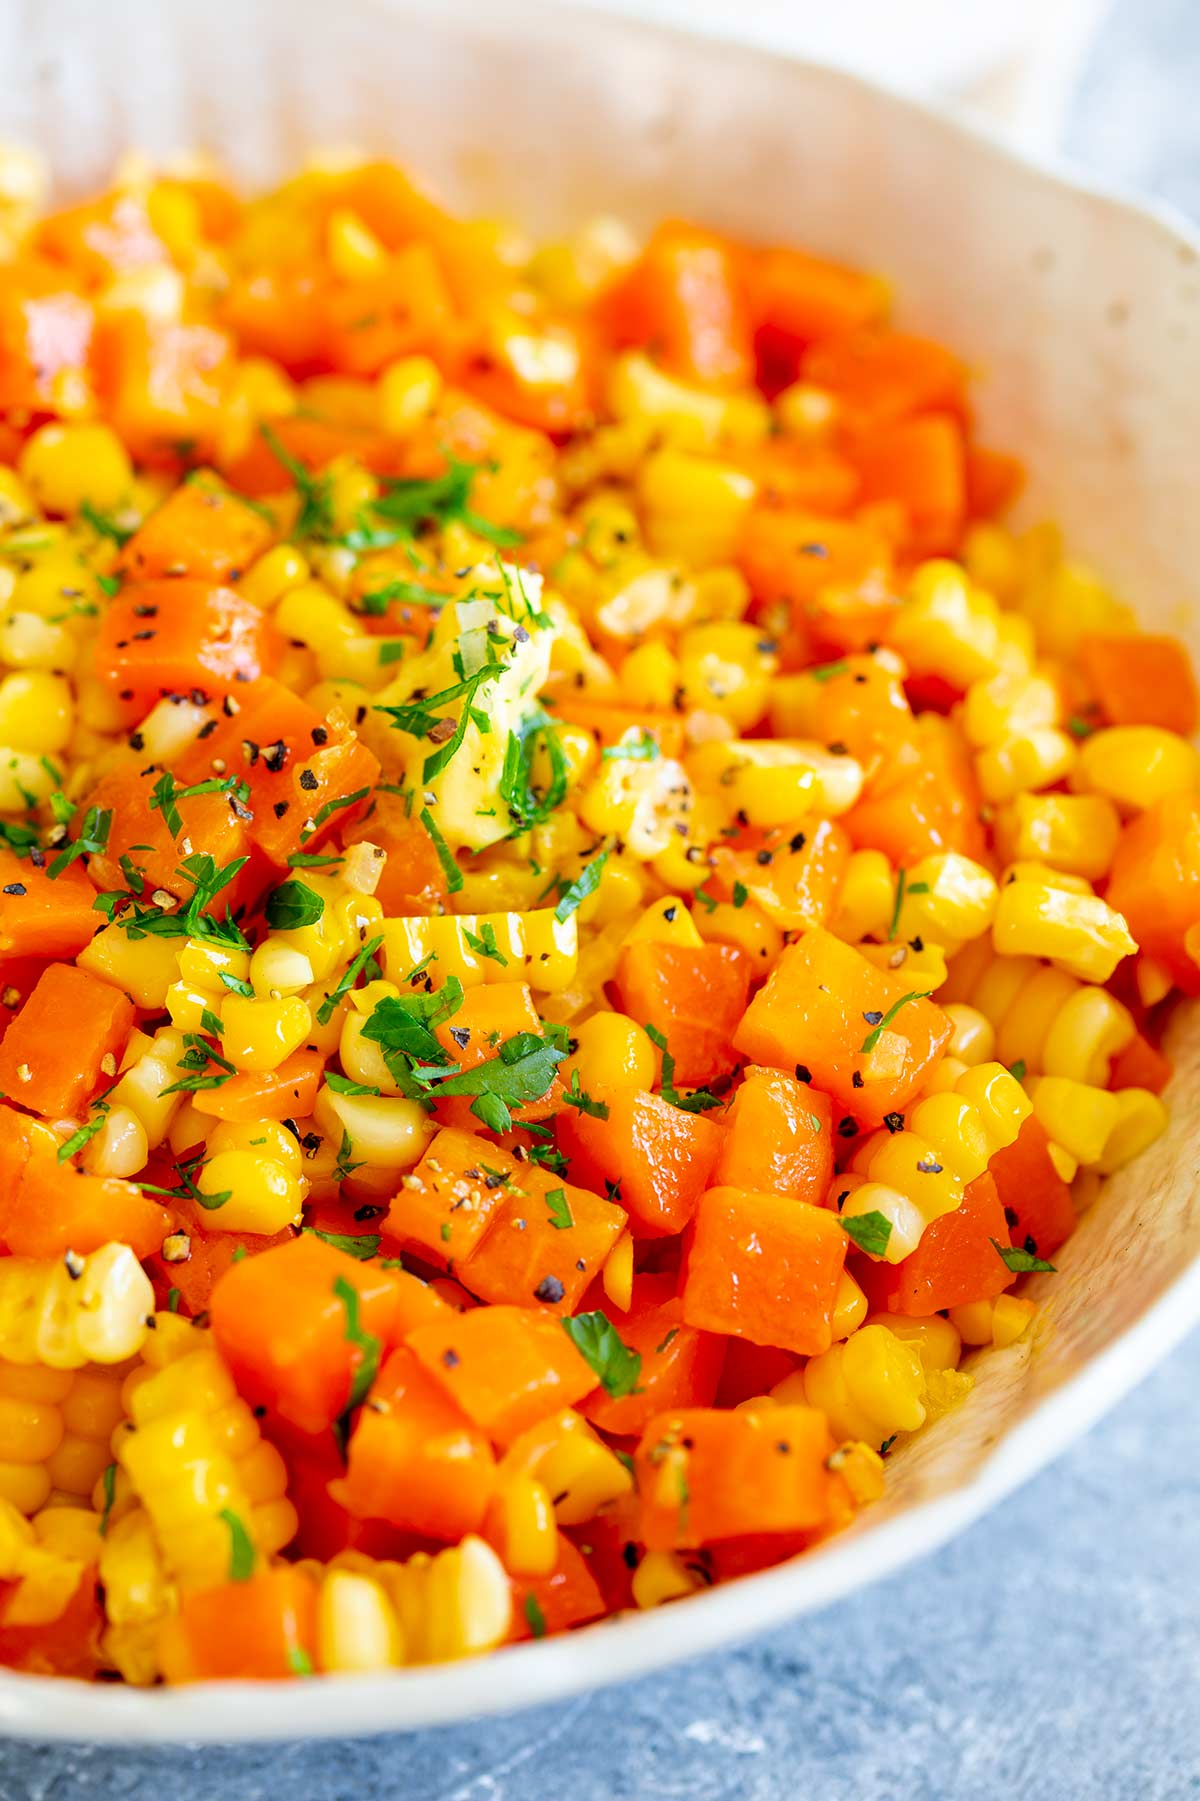 chopped carrots and corn garnished with parsley and pepper